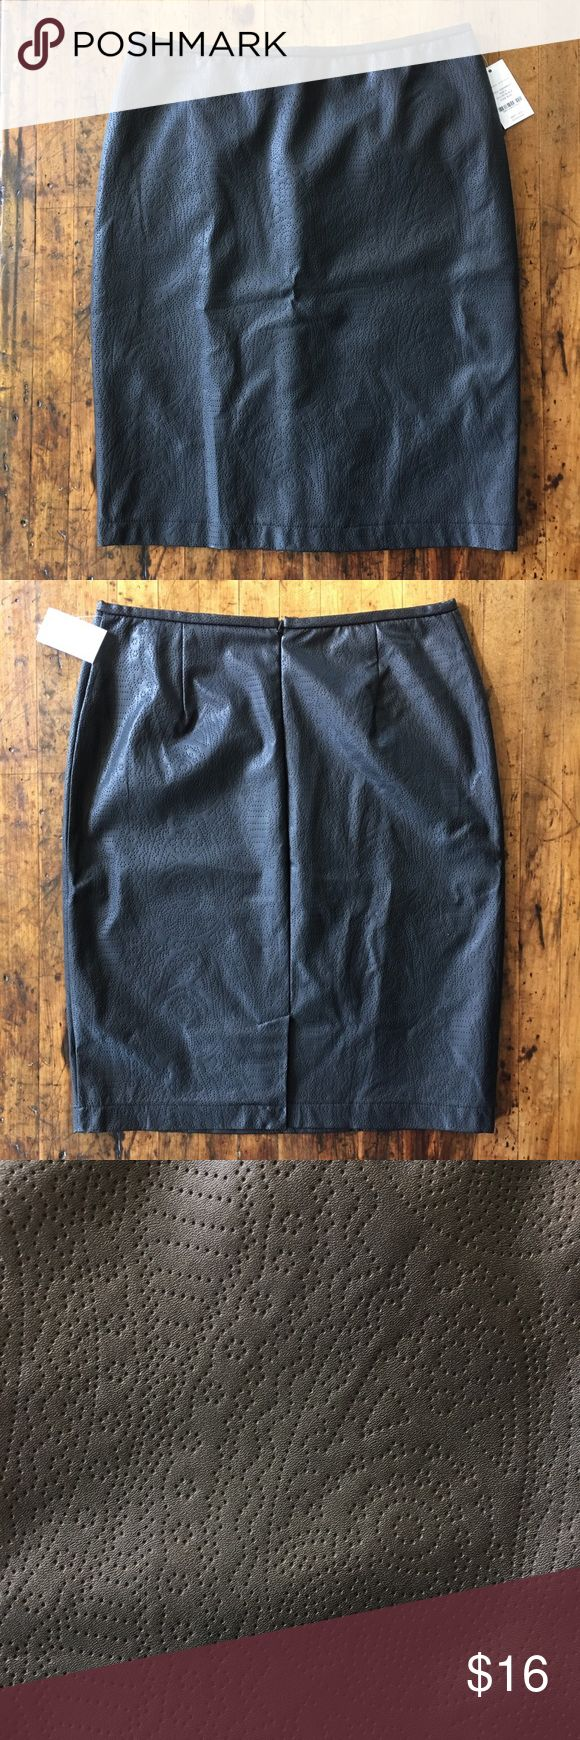 "Black Faux Leather Pencil Skirt 😘 Black Faux Leather Pencil Skirt 😘 NWT. Size 6. Length 22.5"" ... cute perf detail. Skirt is lined. Valerie Stevens Skirts Pencil"